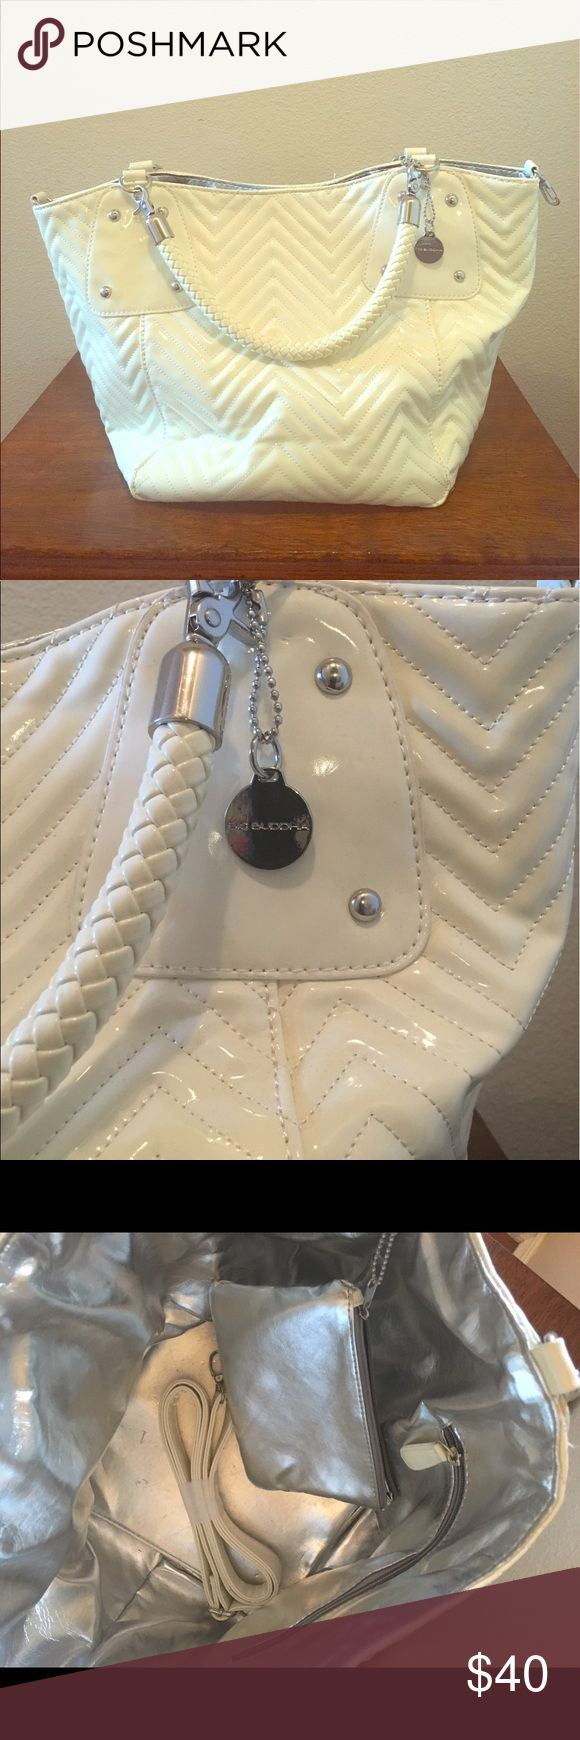 Big Buddha Faux Leather White Quilted handbag Big Buddha White Faux Leather Quilted Embossed style/ silver accents/ silver accessory bag/ shoulder strap and braided drop handle.  Silver satin lining.  Almost brand new. Big Buddha Bags Shoulder Bags